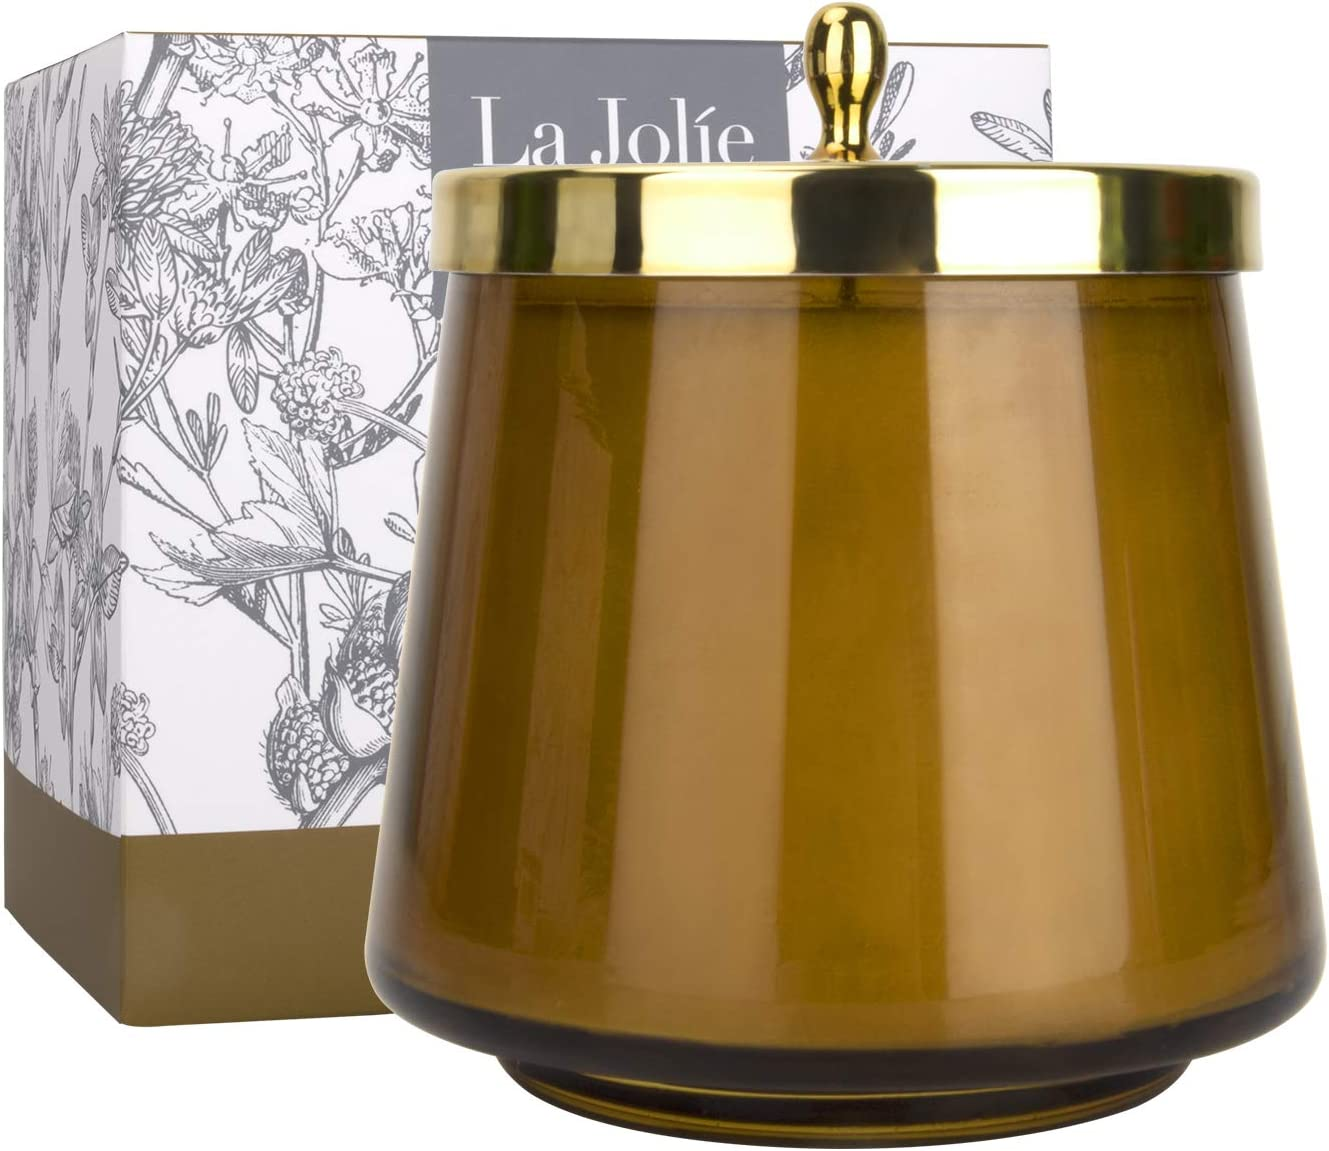 LA JOLIE MUSE Spicy Amber Scented Candle, 100% Natural Candle for Home, 75 Hours Long Burning, Oval Glass Jar Candle, 12.3Oz